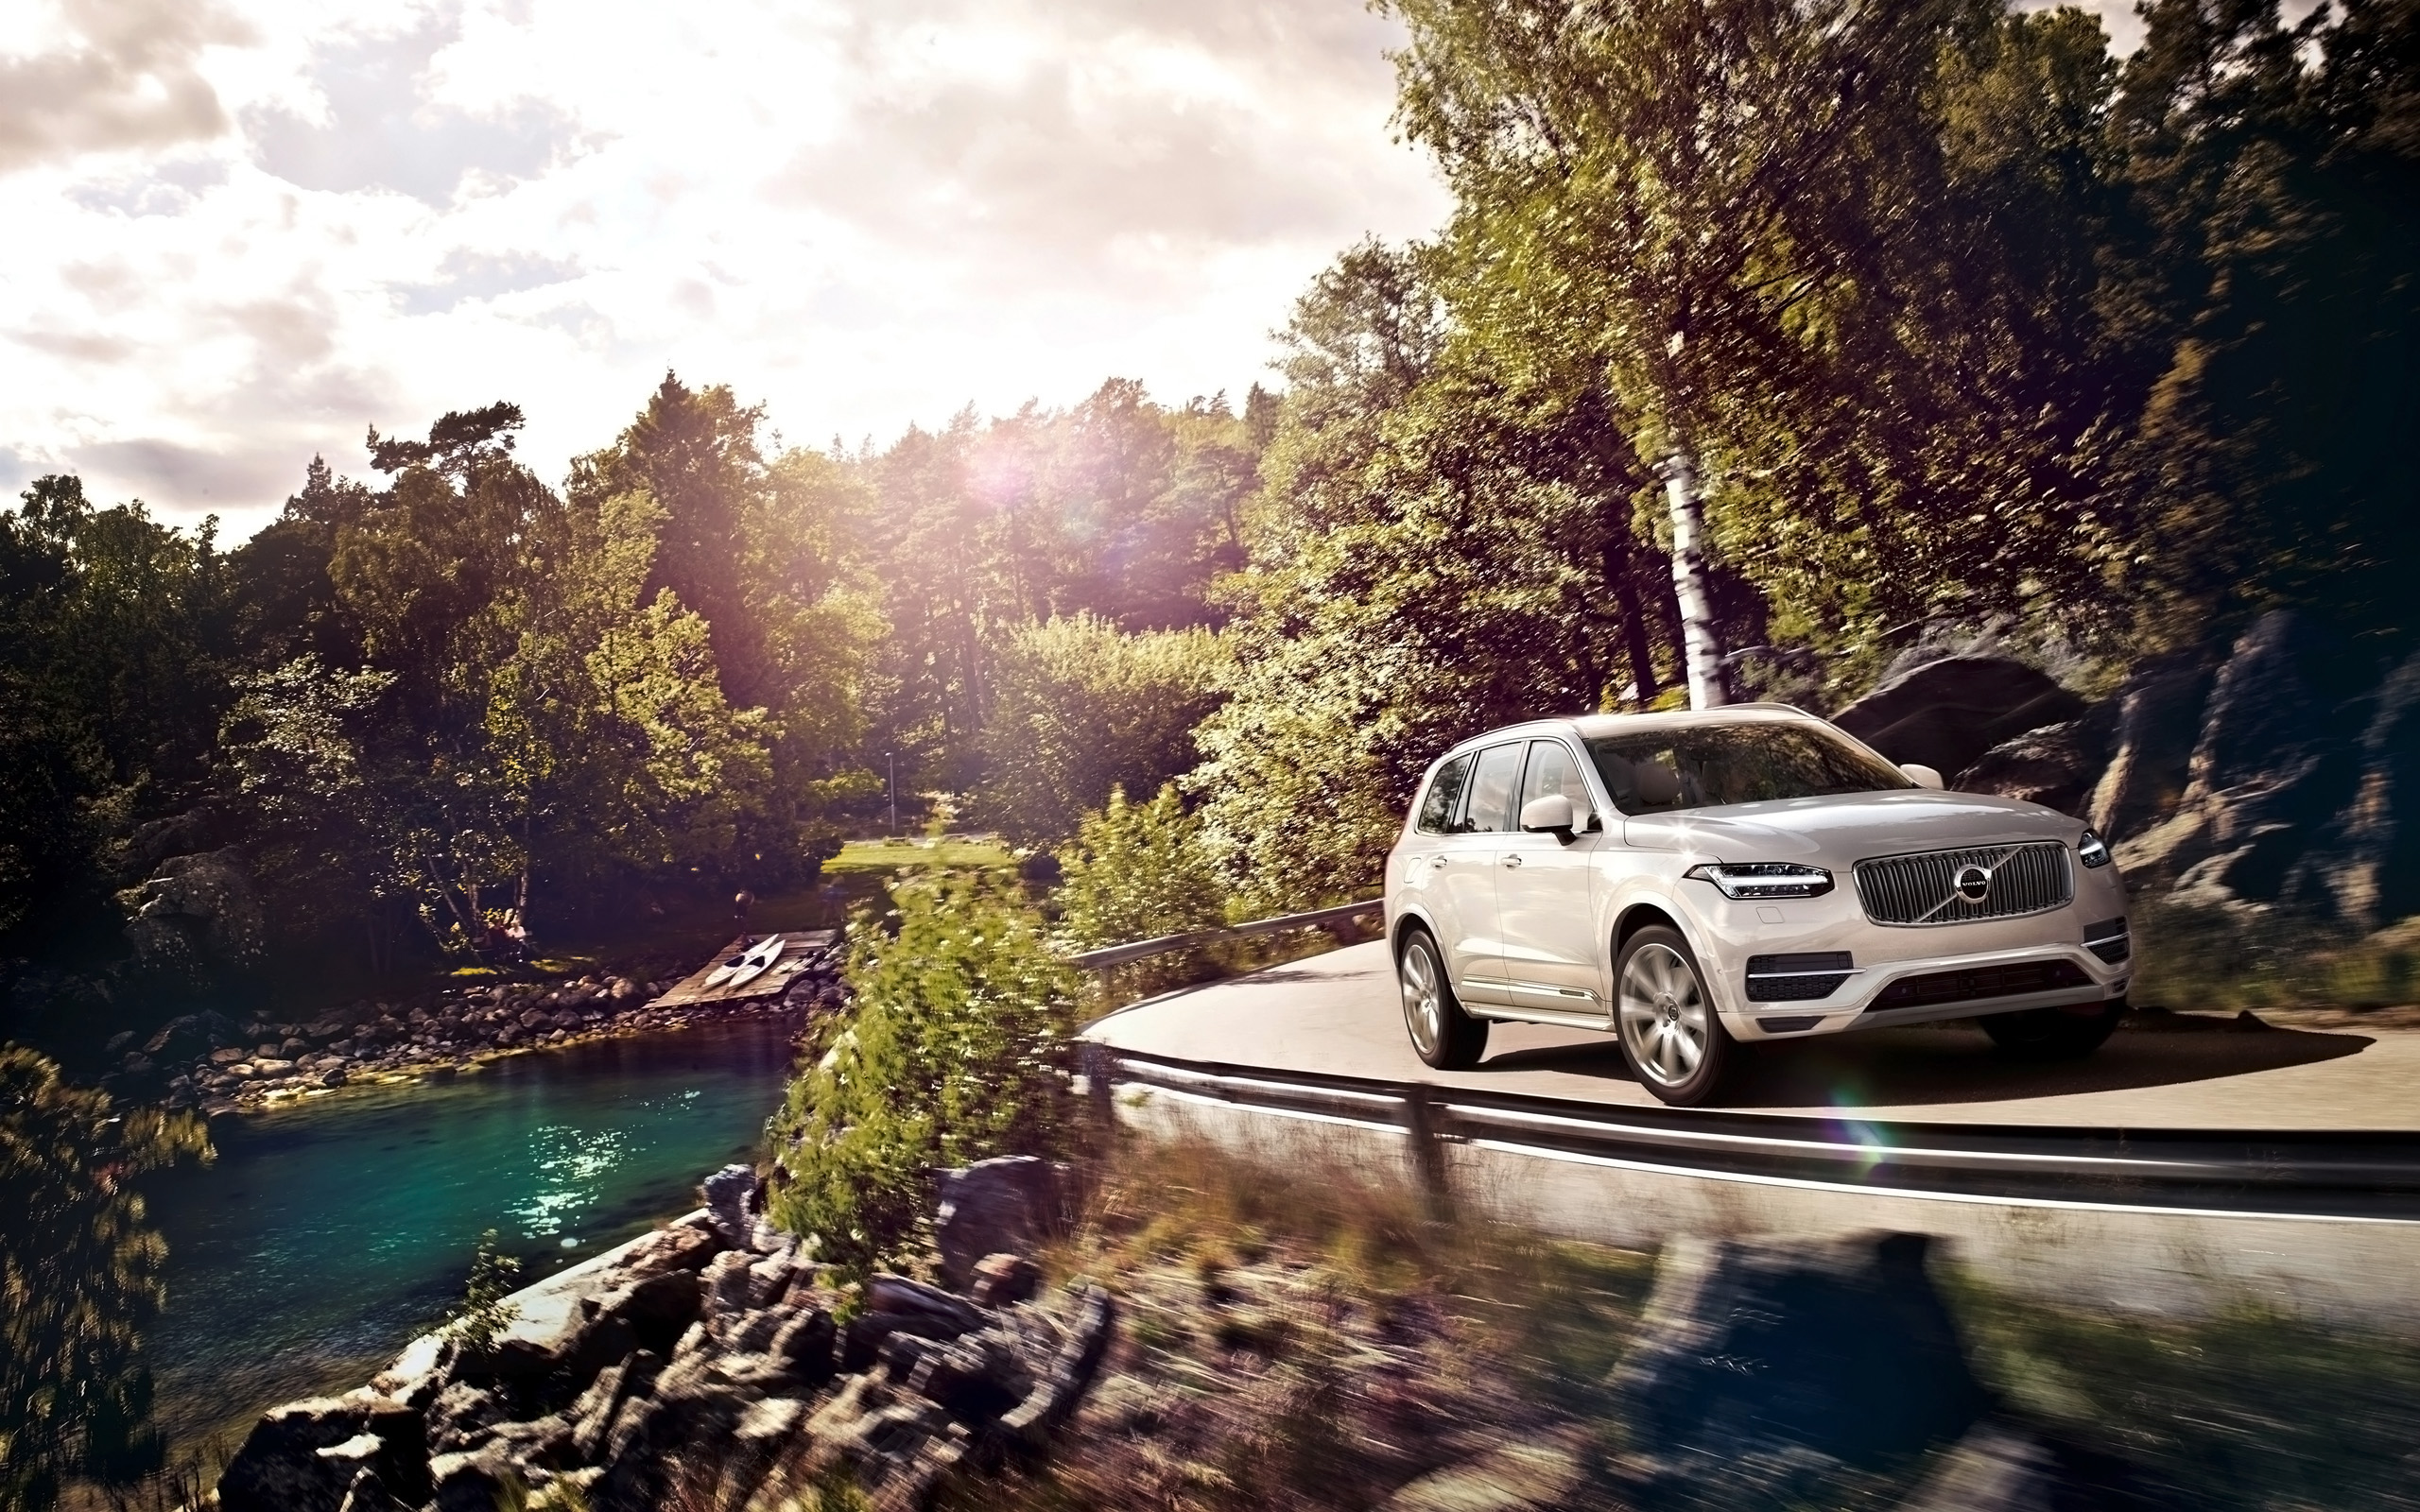 Next-generation Volvo XC90 coming by mid-2015